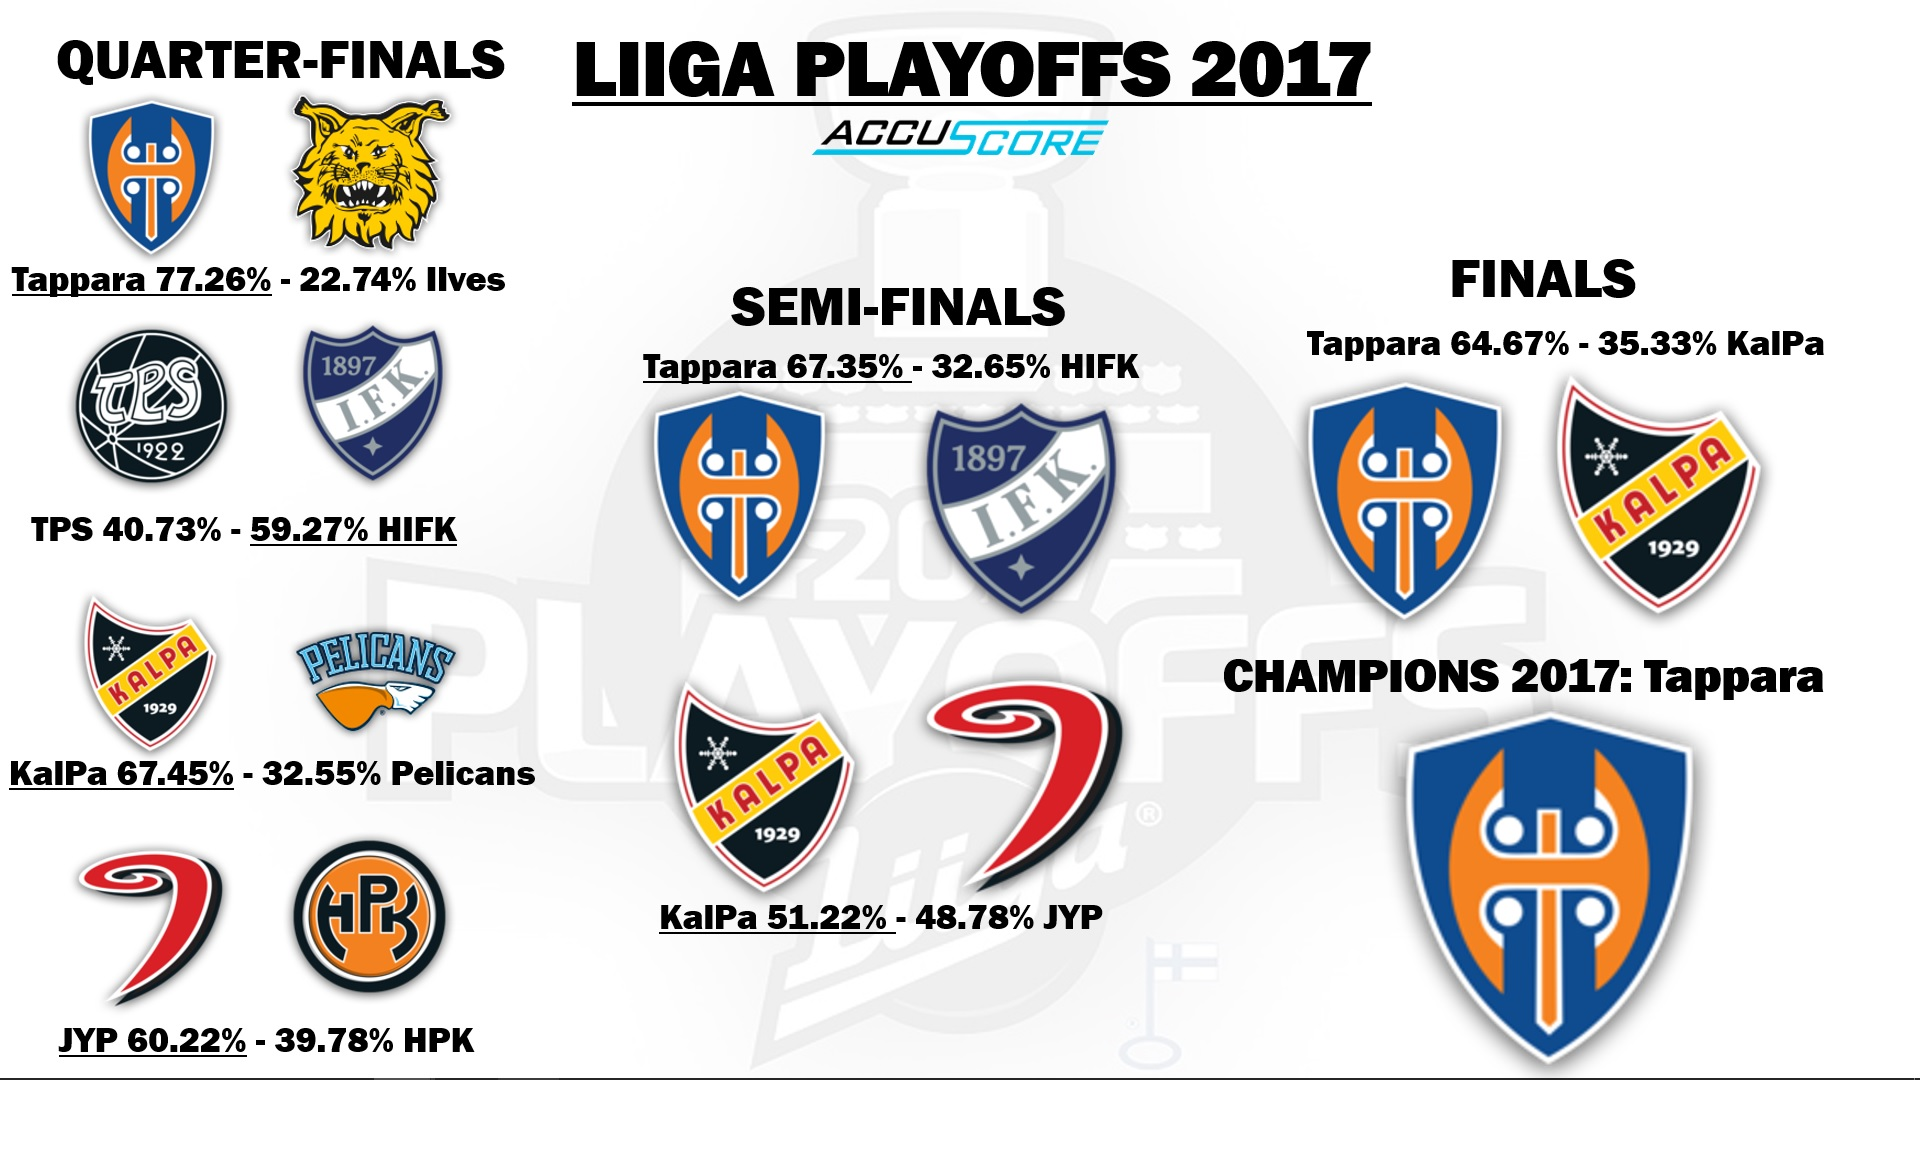 Accuscore's Finnish Liiga Playoffs 2017 Bracket